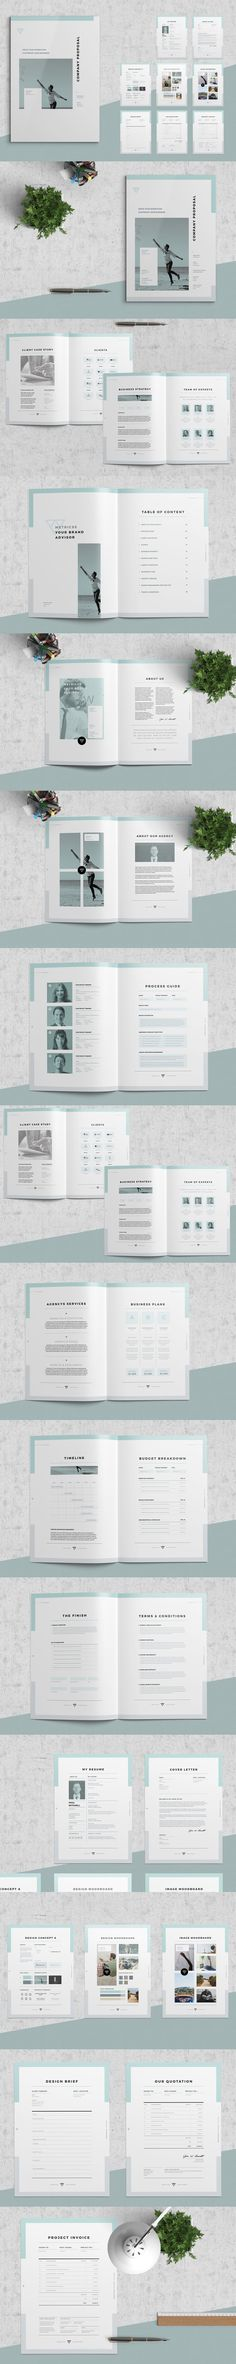 Proposal Proposal templates, Proposals and Brochures - proposal templates